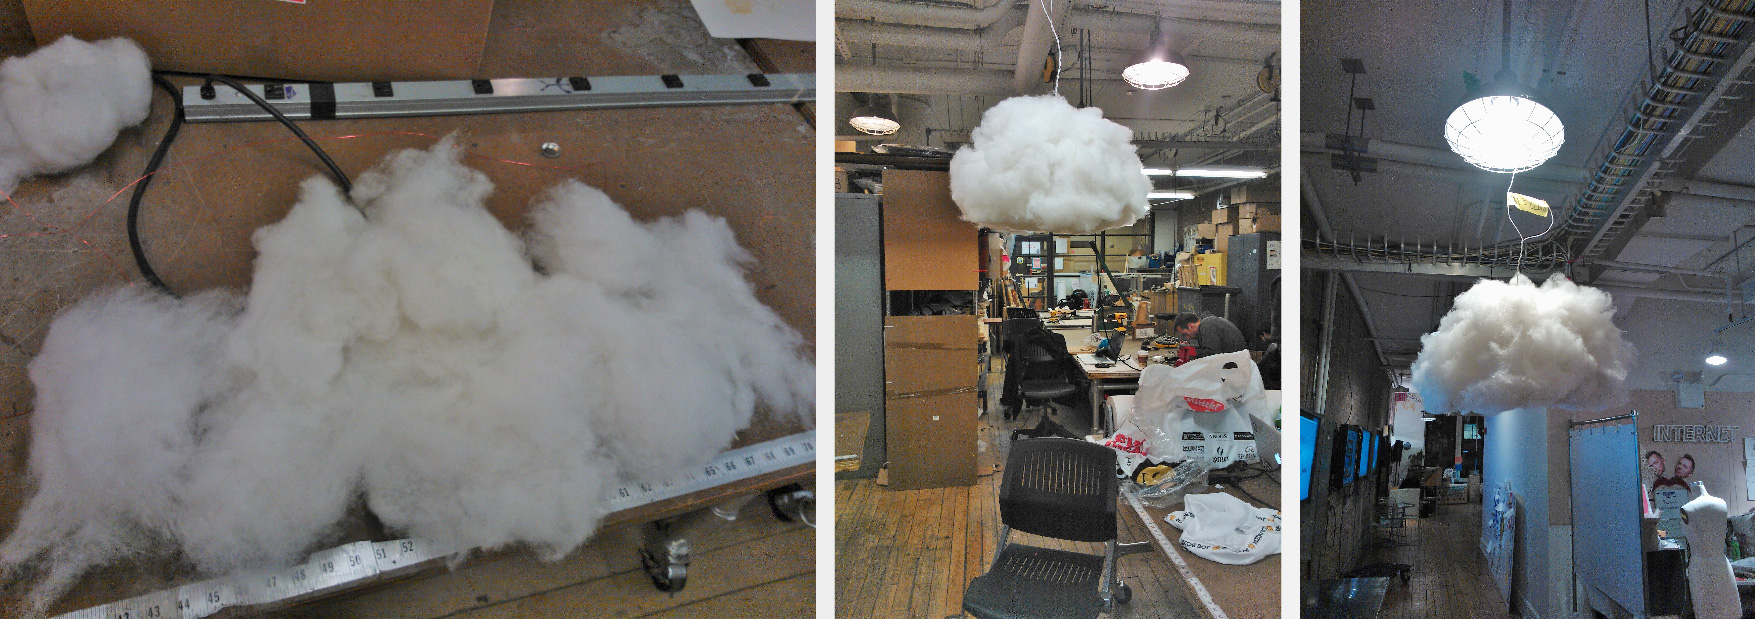 Cloud making. Making frame first, packing it up, and wrapping it with cotton to make it looks more cloud-like.